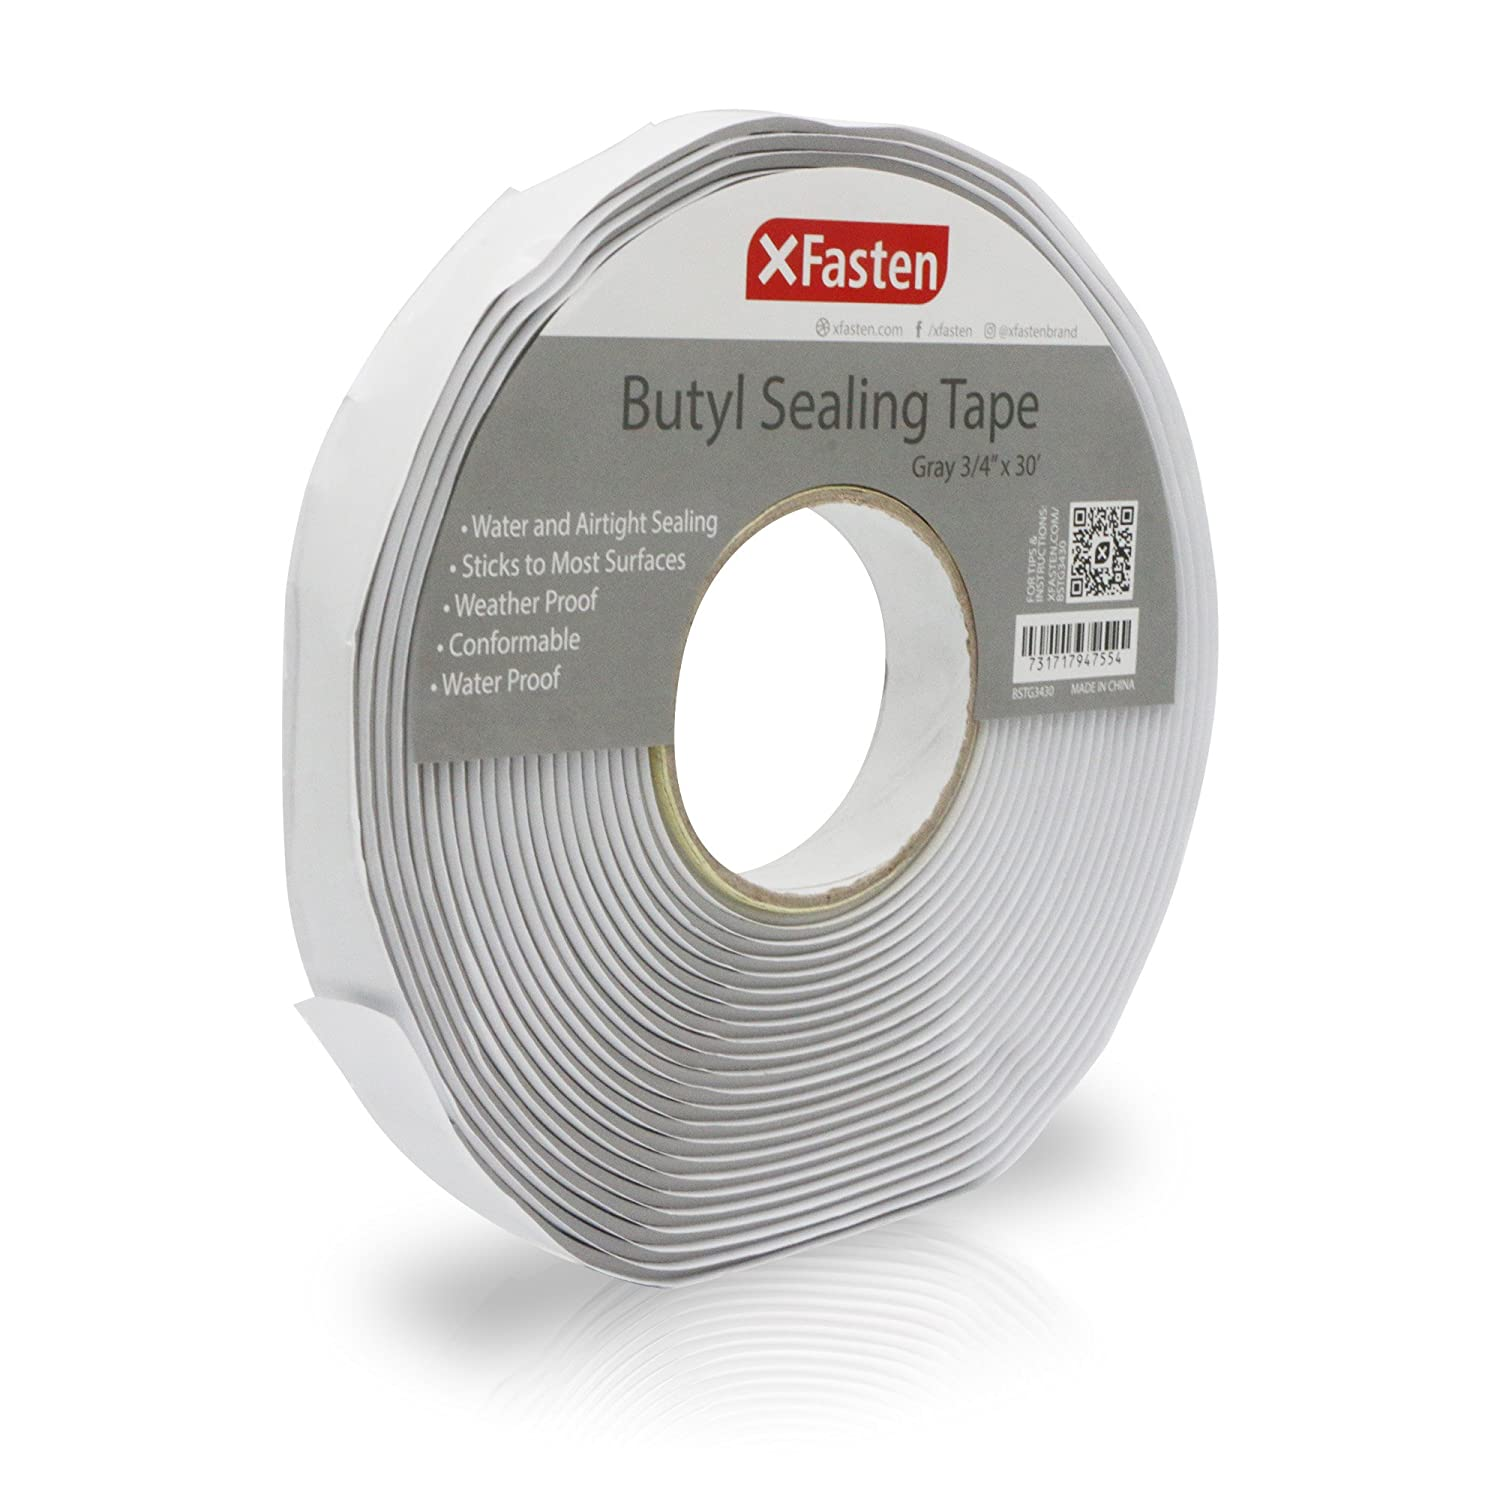 XFasten Butyl Putty Tape, Gray, 1/8-Inch x 3/4-Inch x 30-Foot, Heavy Duty and Leak Proof Rubber Putty Tape for RV Repair, Window, Boat Sealing, Glass and EDPM Rubber Roof Patching